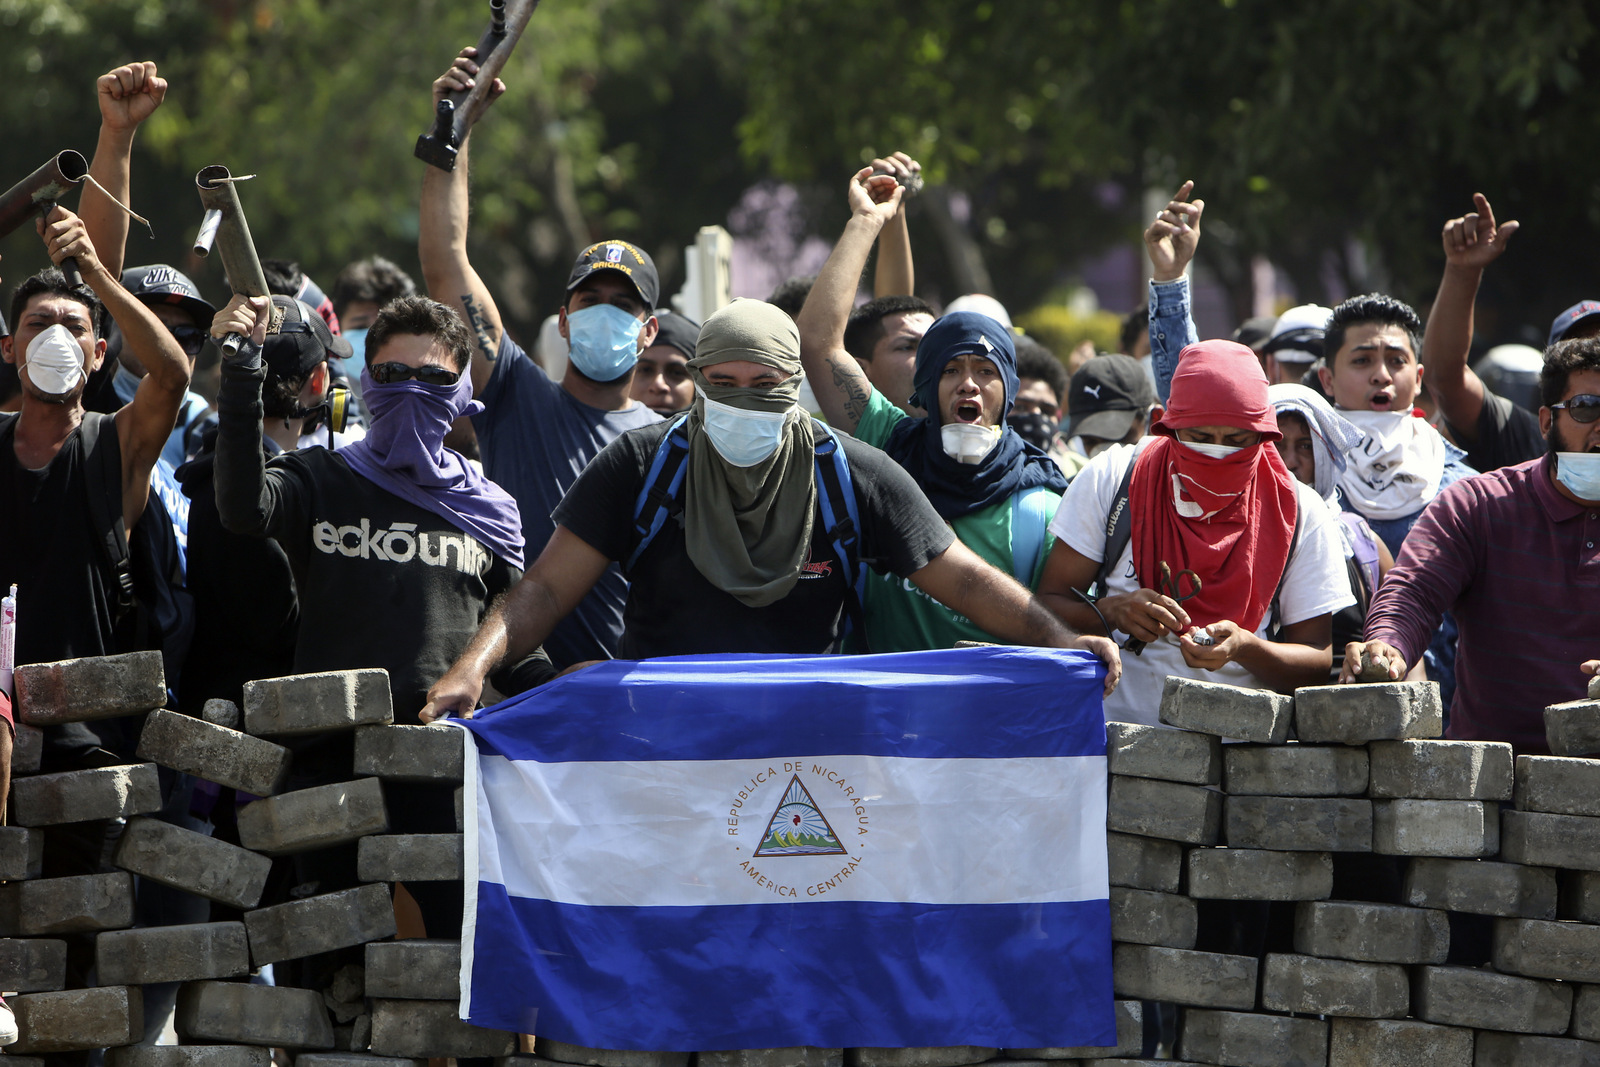 Masked protesters yell from the road block they erected as they face off with security forces near the University Politecnica de Nicaragua (UPOLI) in Managua, Nicaragua, April 21, 2018. (AP/Alfredo Zuniga)